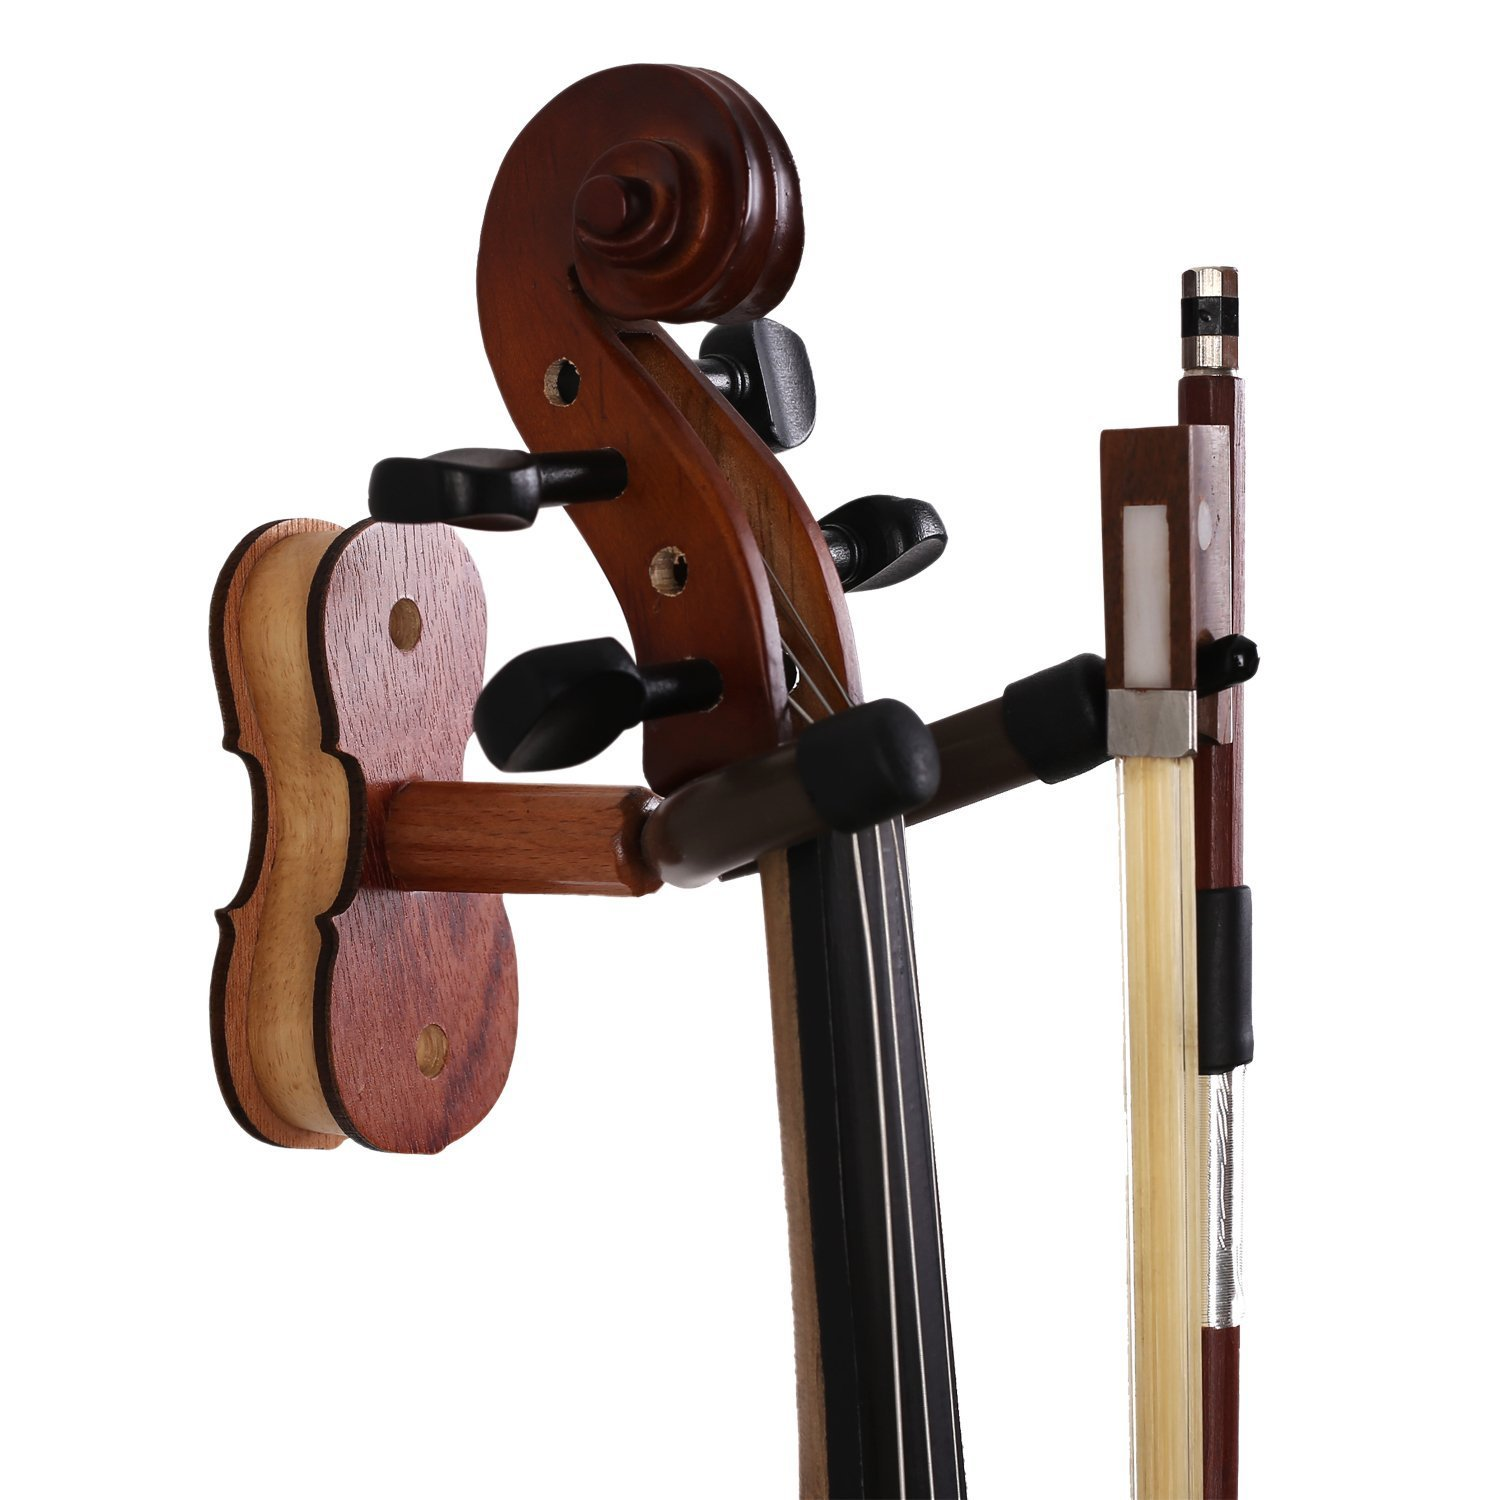 Rosewood Violin Hanger With Bow Hanger Home & Studio Wall Mount Violin Hanger (Rosewood MA-R5)